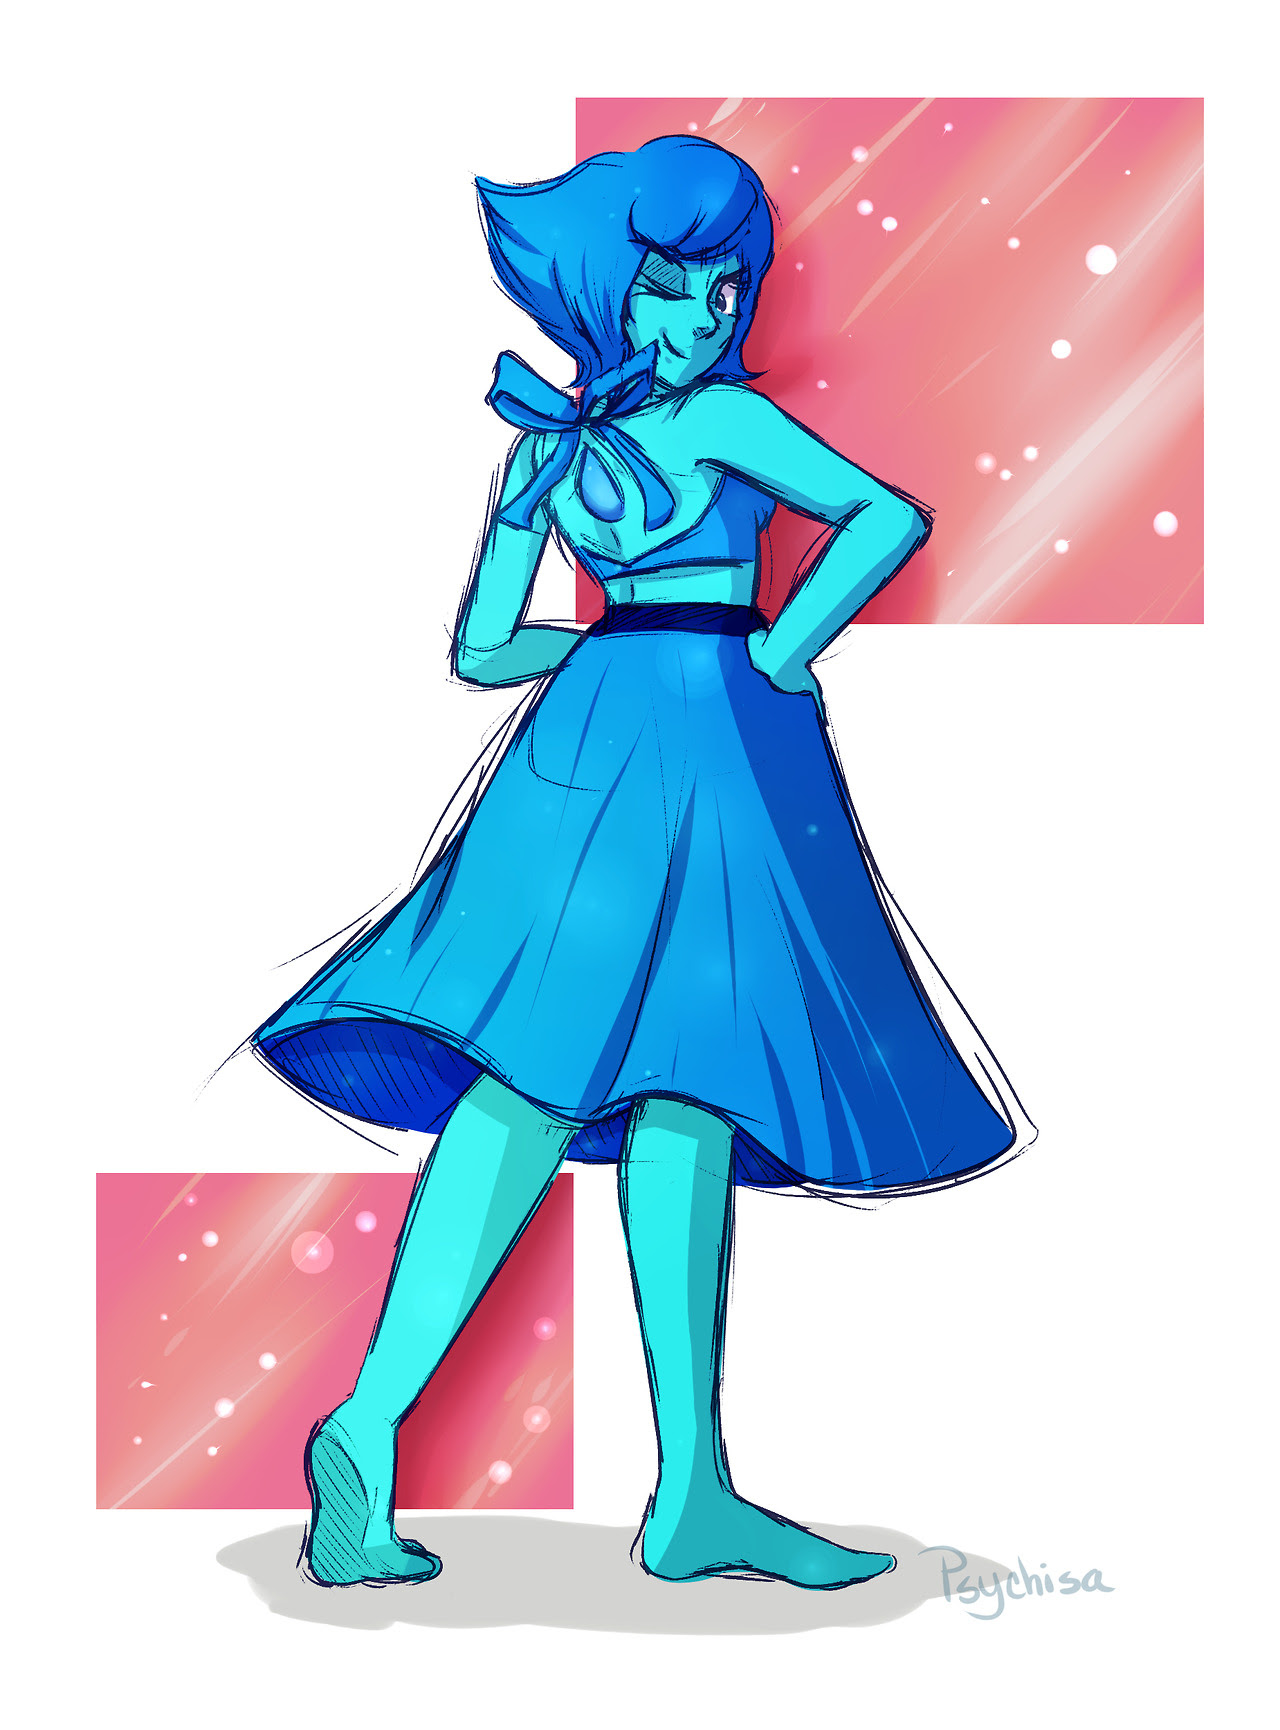 Here's more art! This time it's Lapis from Steven Universe durig that one ep where her, Peridot and Connie have to 'defend' Beach City. That was so cute lmaoo